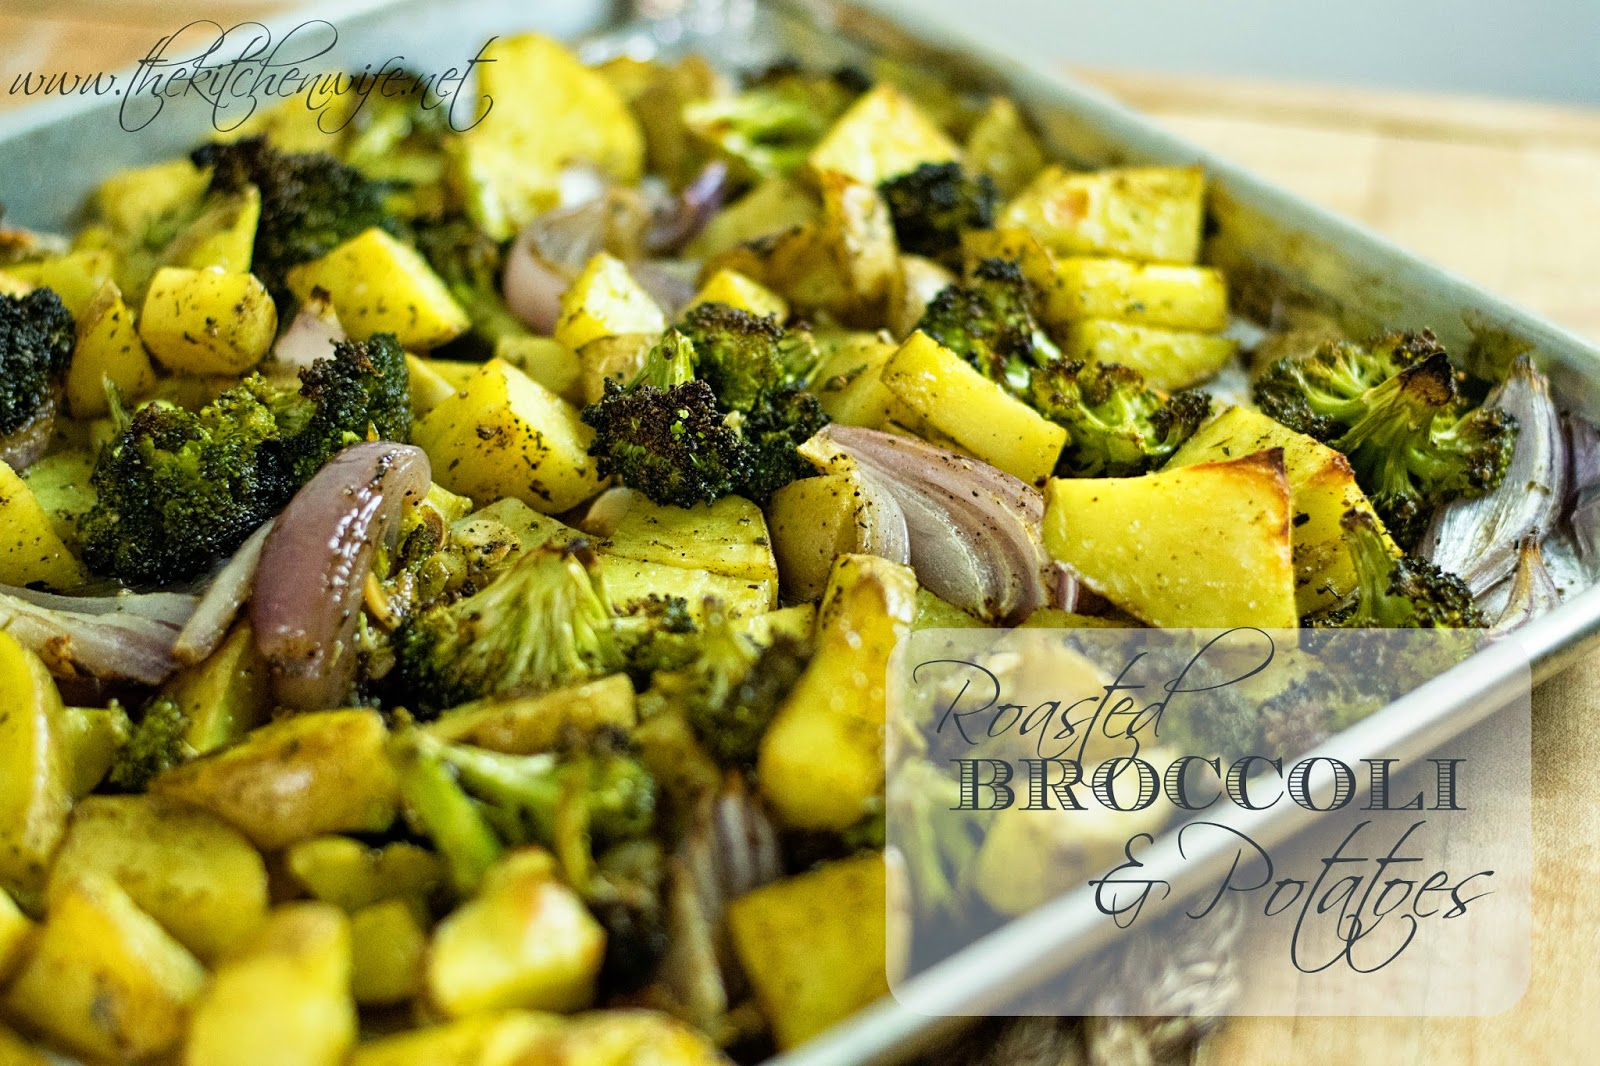 Roasted Broccoli and Potatoes